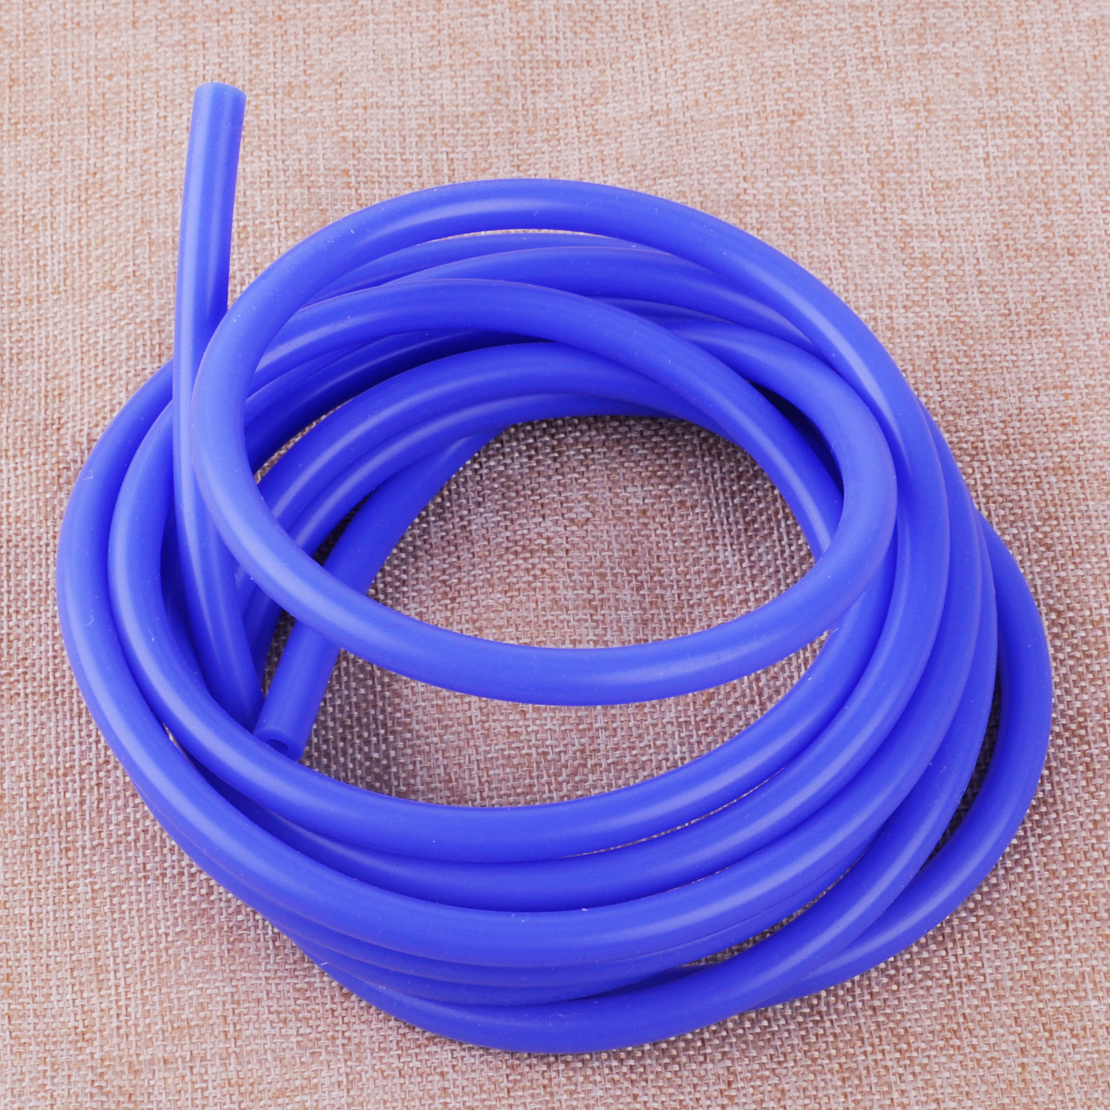 3 METERS SILICONE HOSE FOR HIGH TEMP VACUUM ENGINE BAY 4MM RED ORANGE COLOR S4